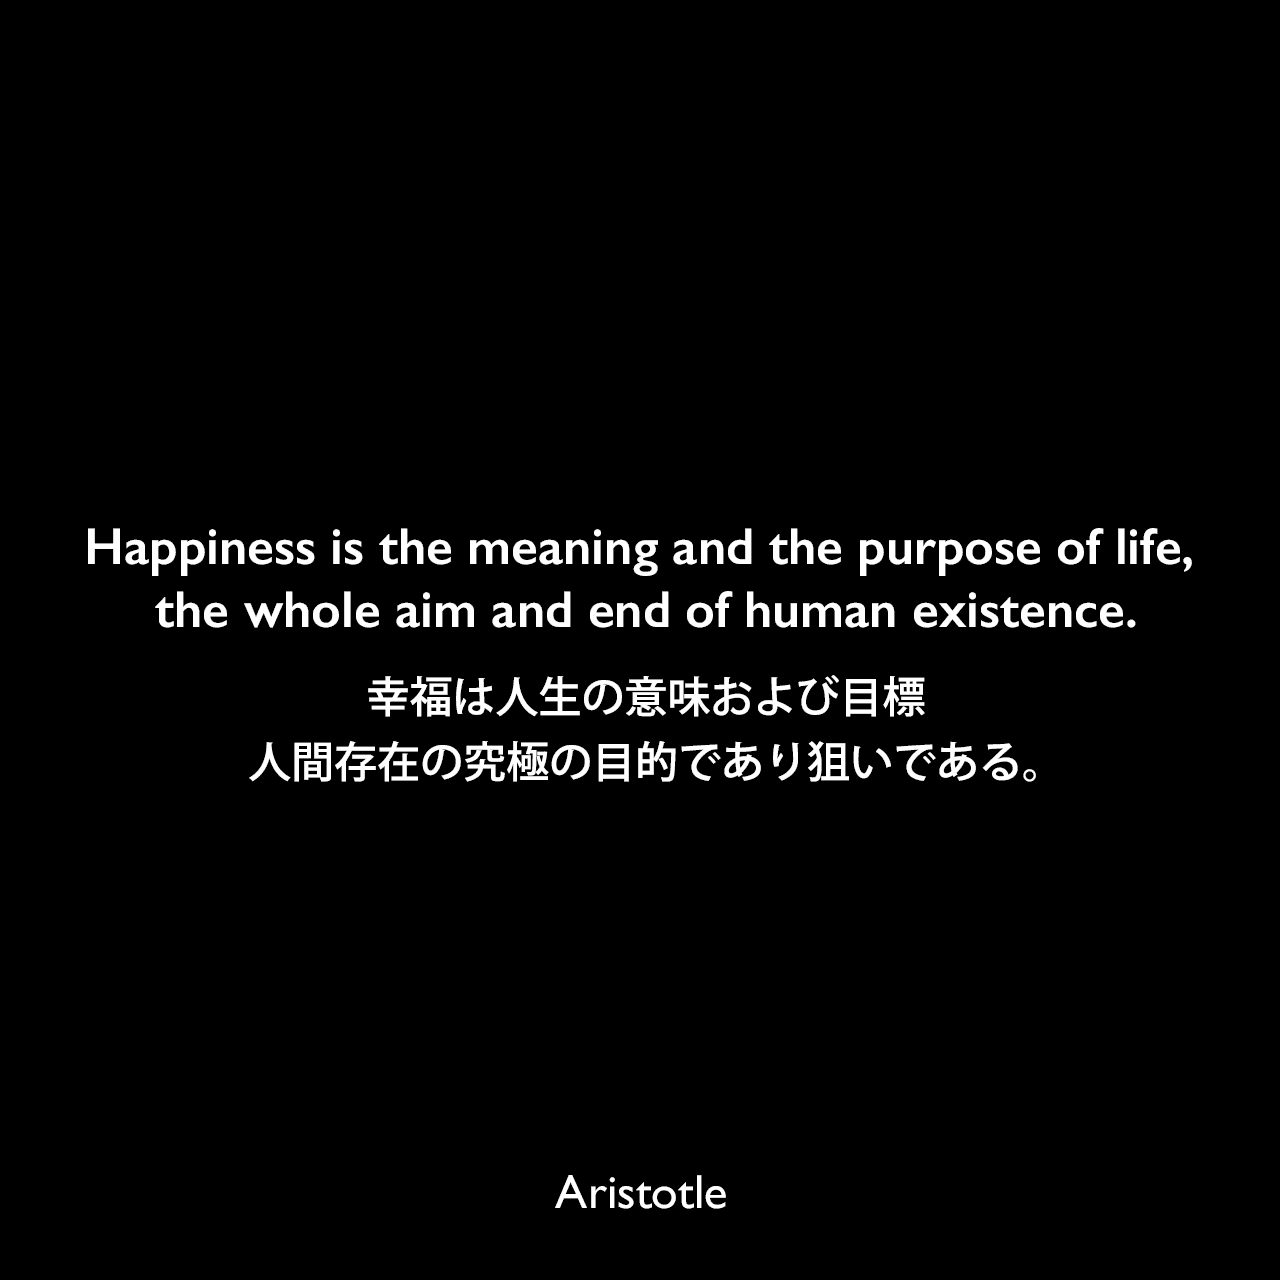 Happiness is the meaning and the purpose of life, the whole aim and end of human existence.幸福は人生の意味および目標、人間存在の究極の目的であり狙いである。Aristotle